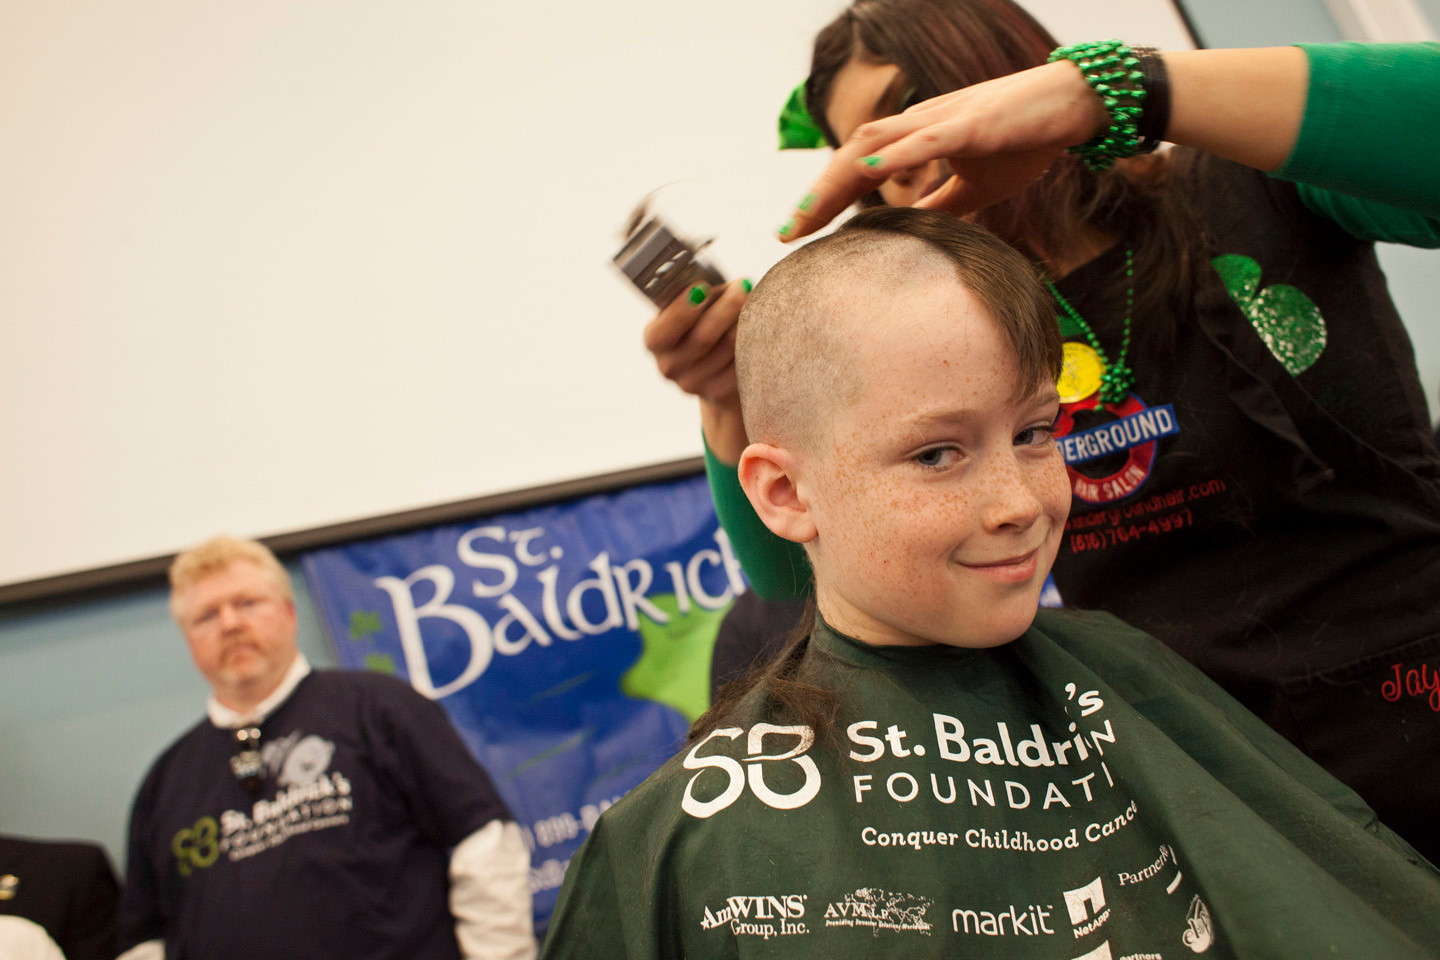 J.T. Travers, 9, from the Wilson School, had his head shaved.